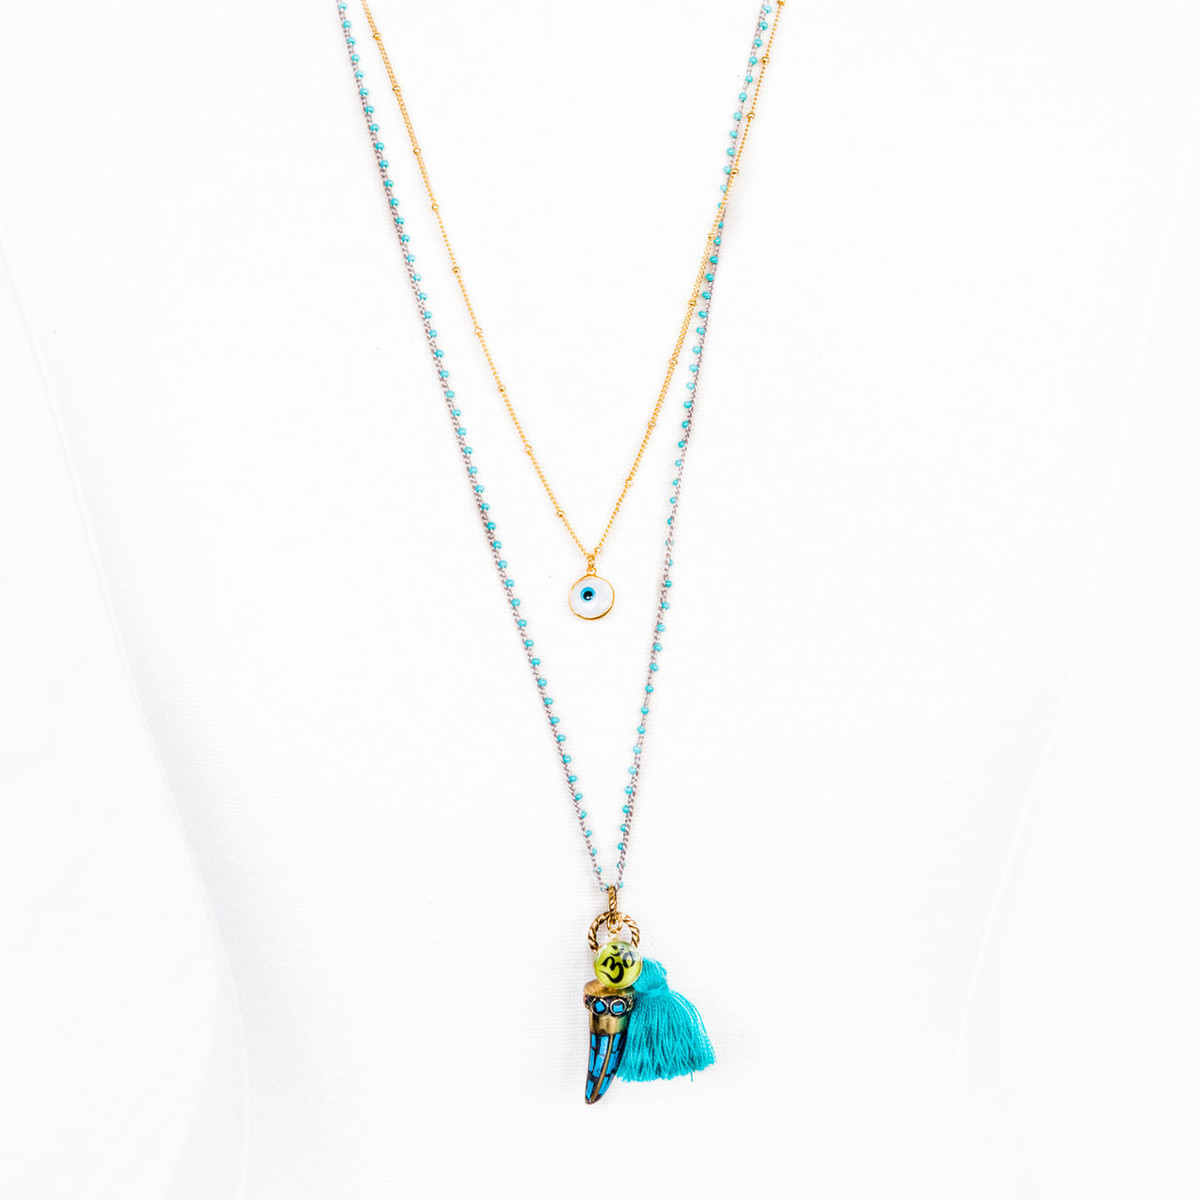 7Stitches Beaded Zen in Turquoise Necklace